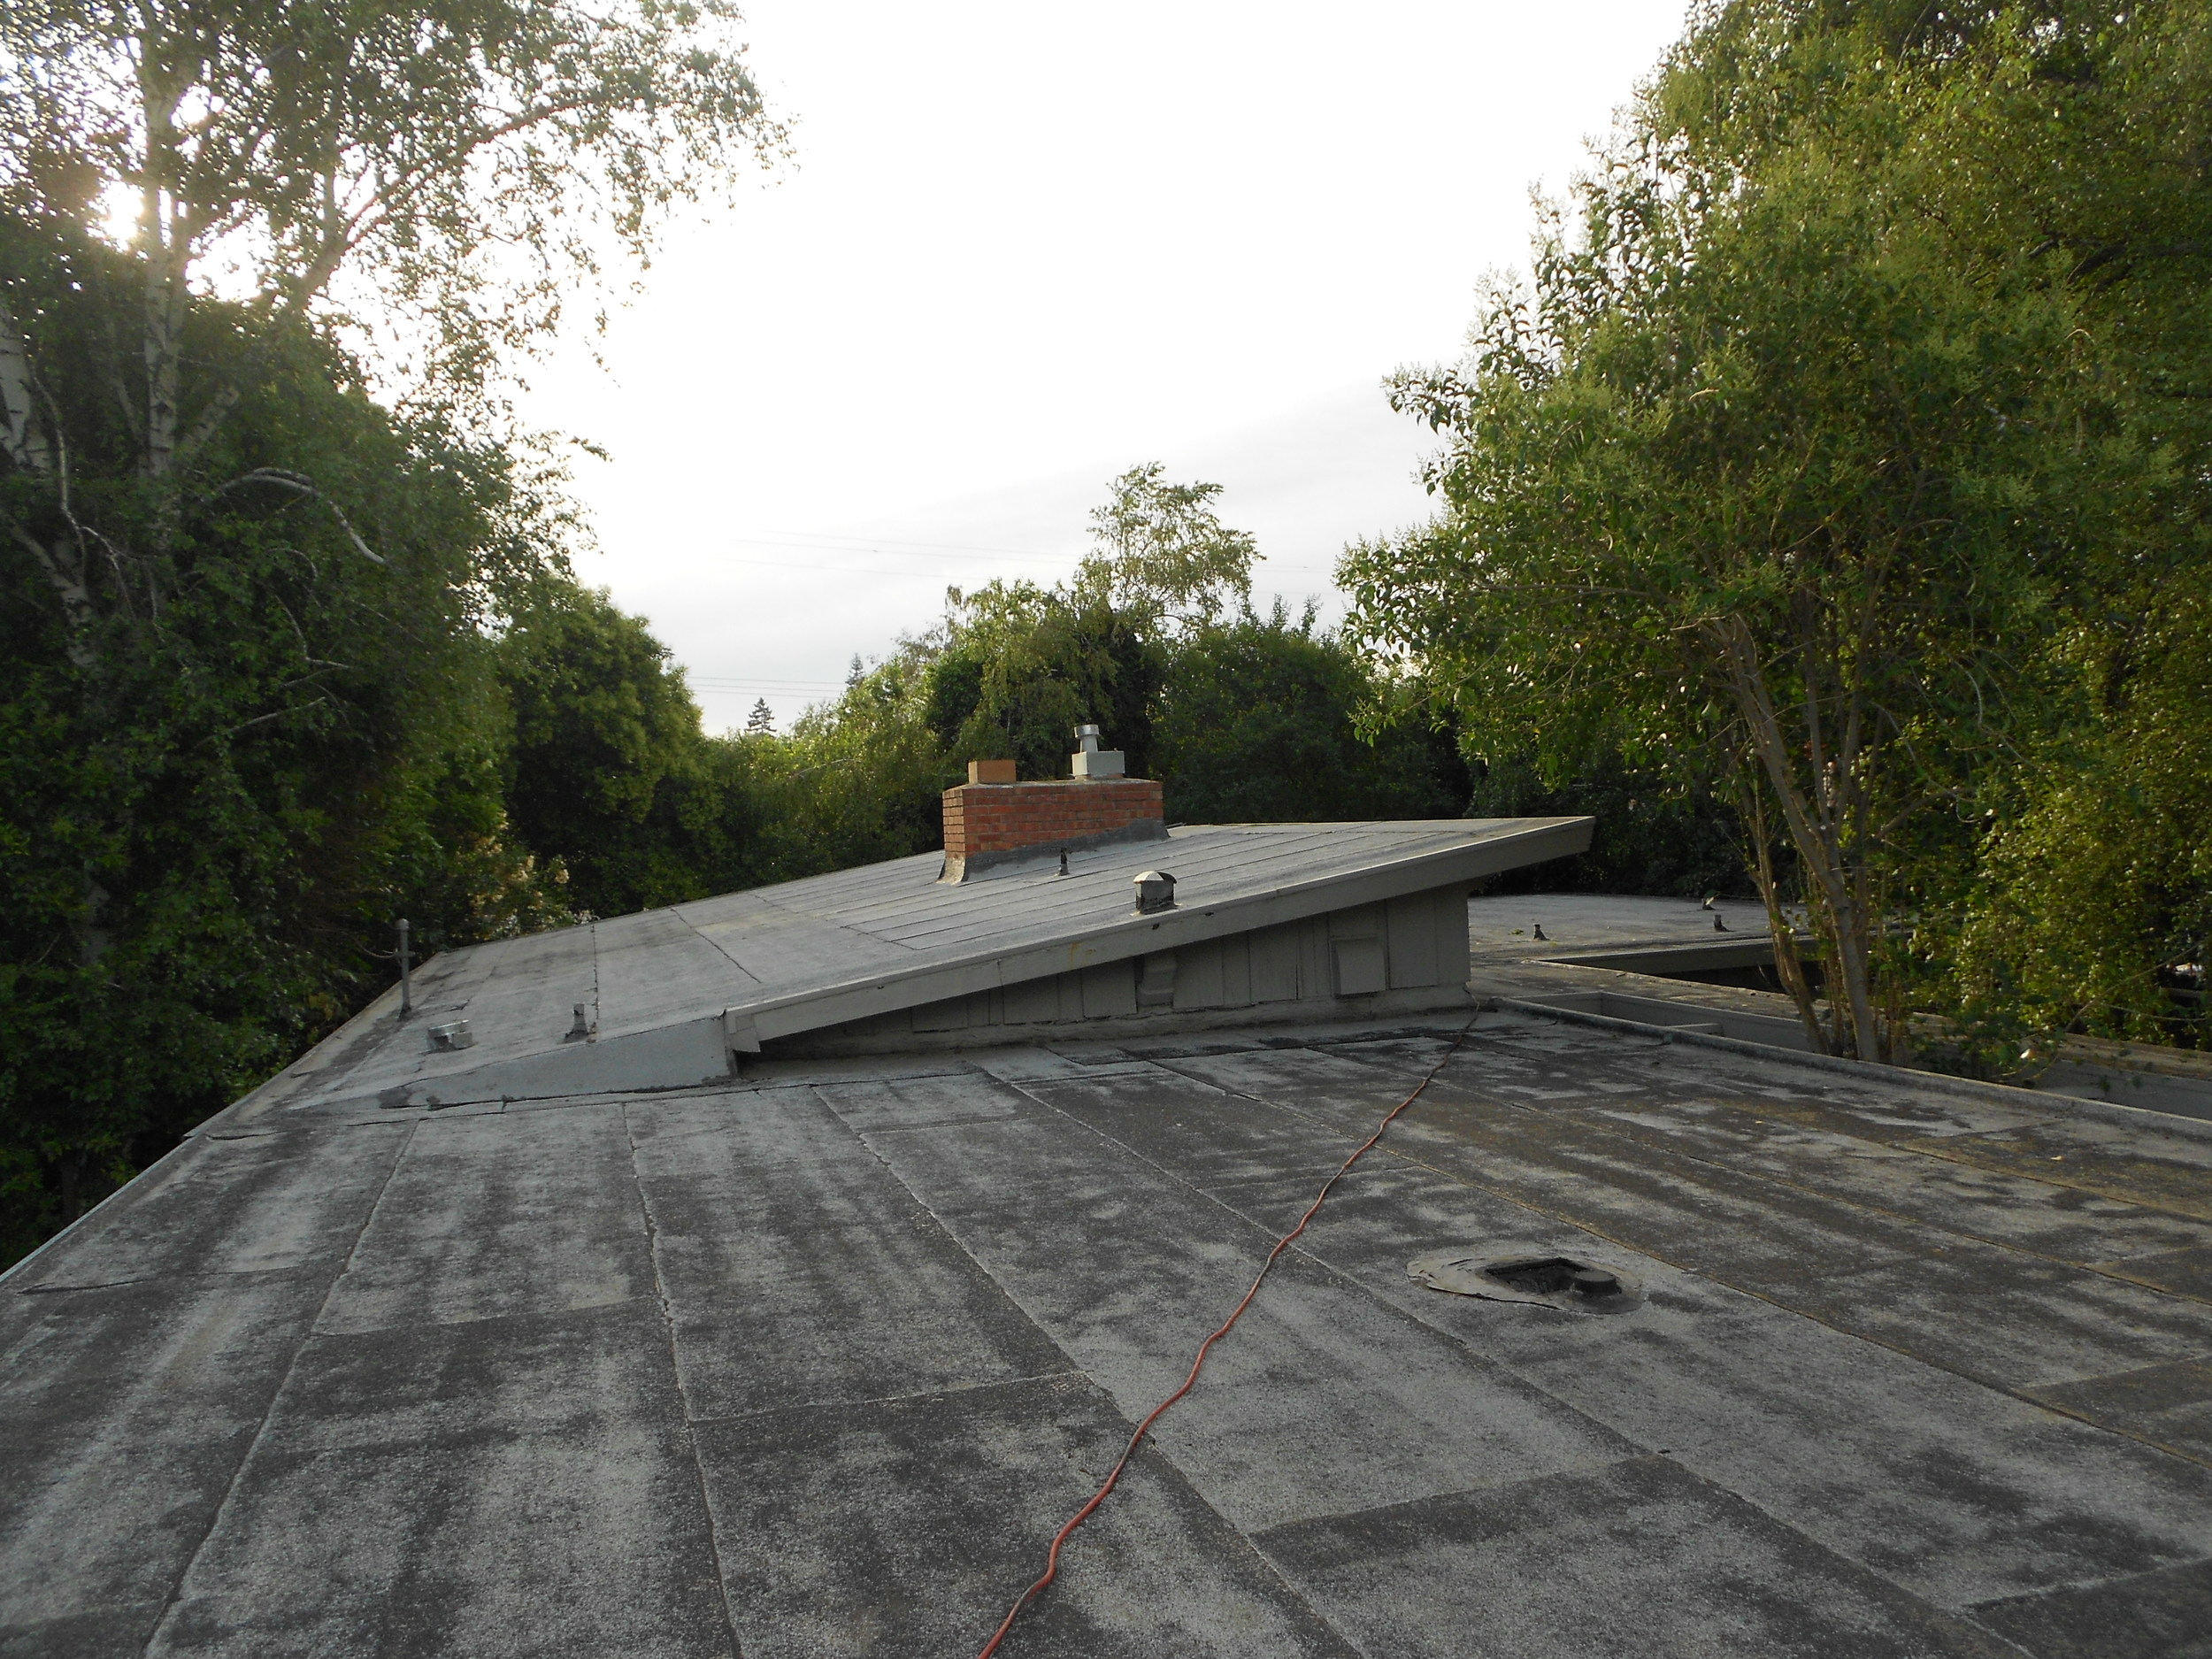 Completed Foam & Coatings Project by Ved's Roofing of Yuba City, CA.